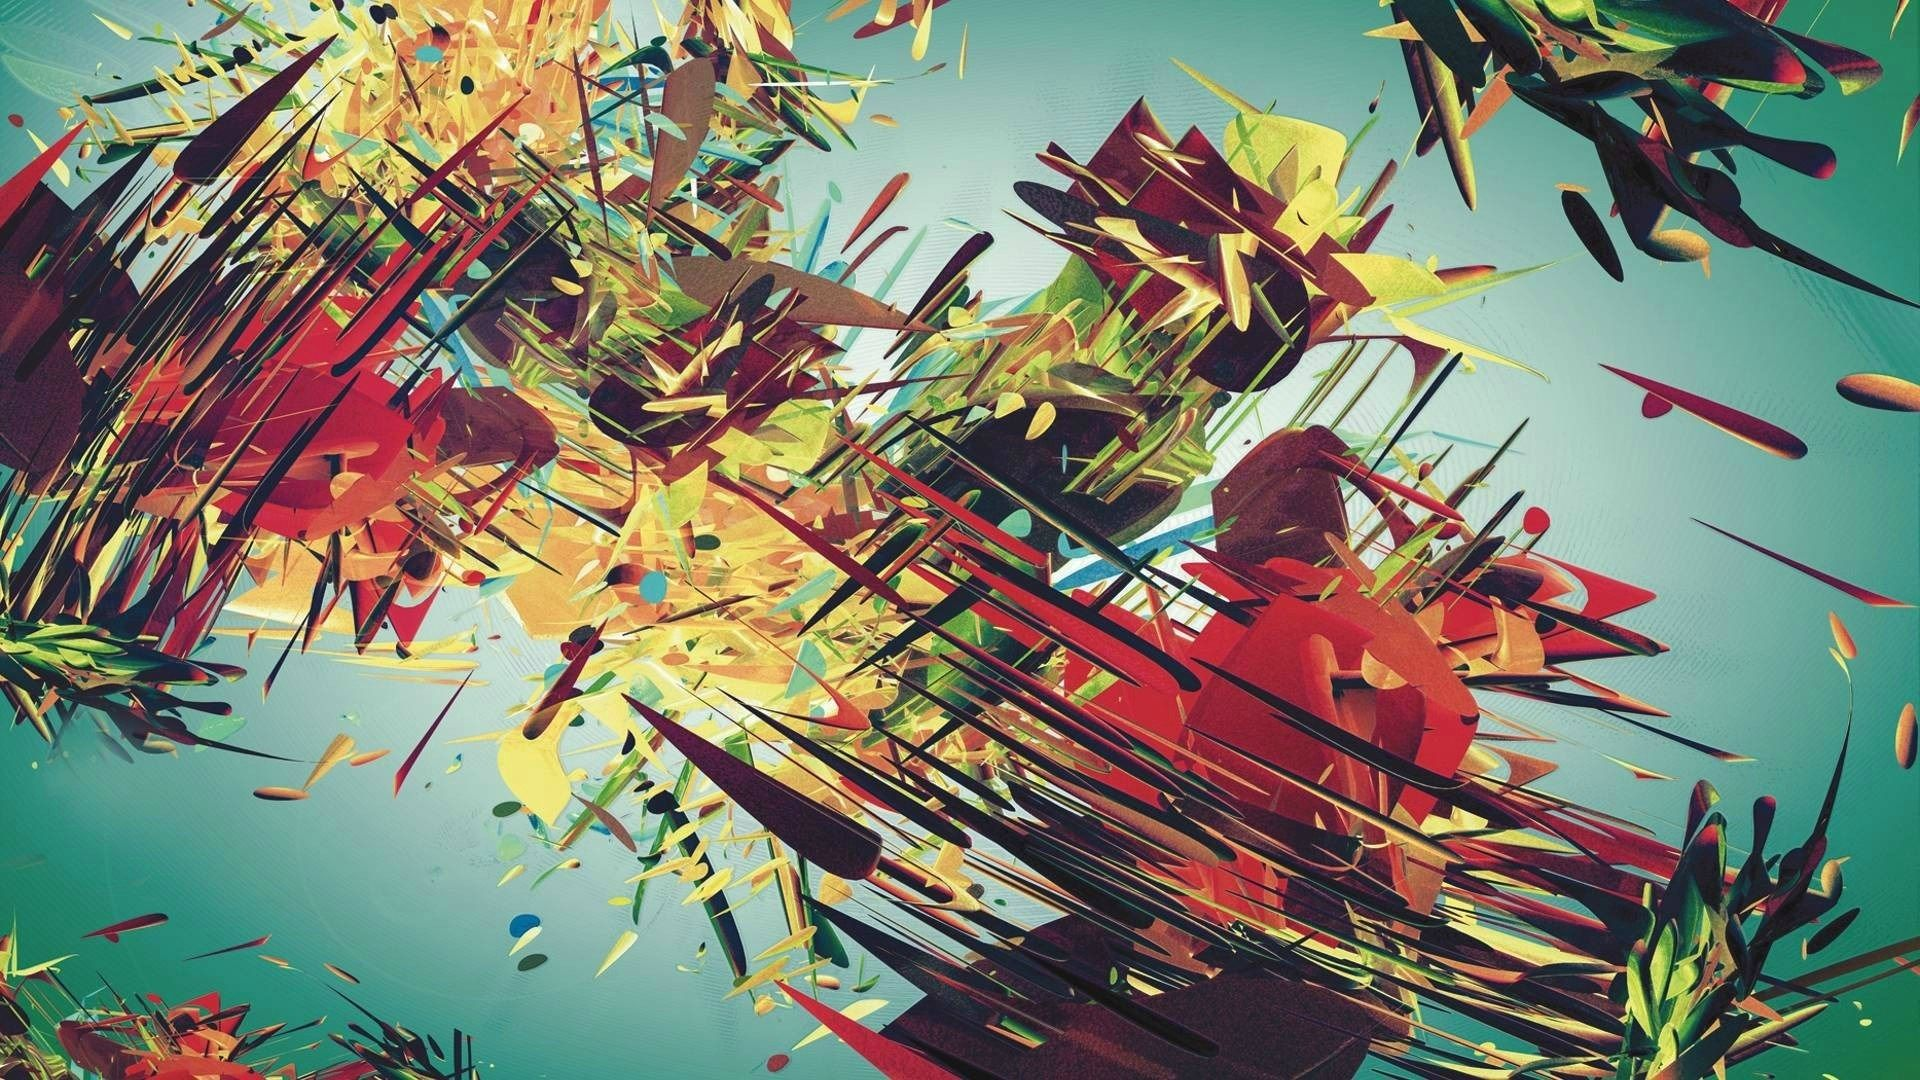 1920x1080 abstract high quality wallpaper for desktop